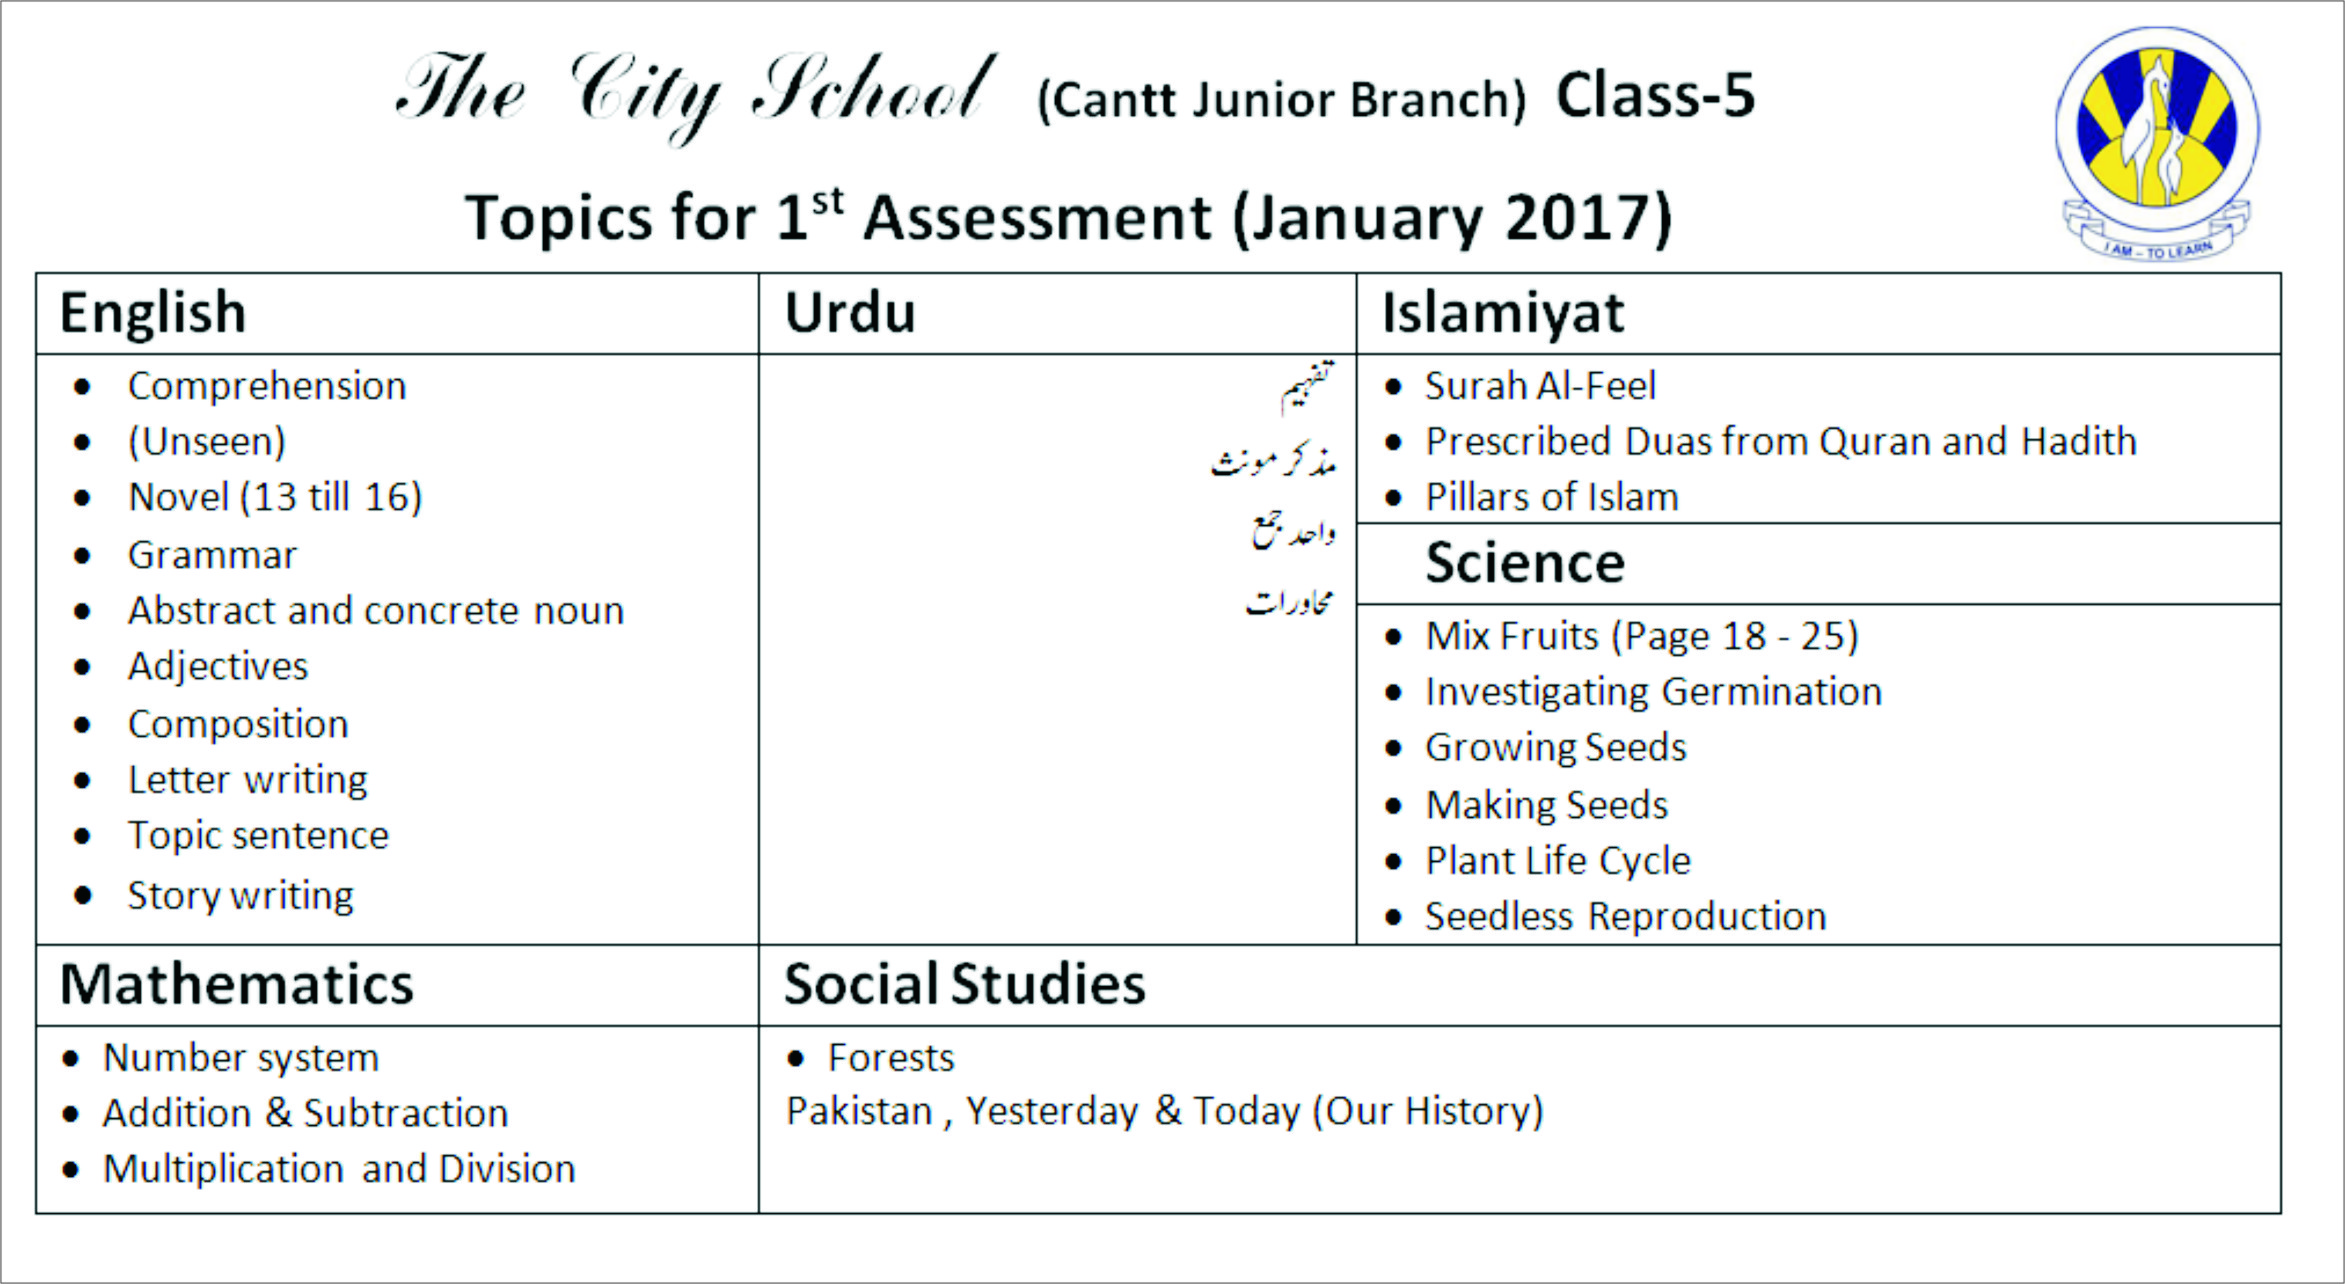 Topics For 1st Assessment January Class 5 The City School Cantt Junior Rawalpindi